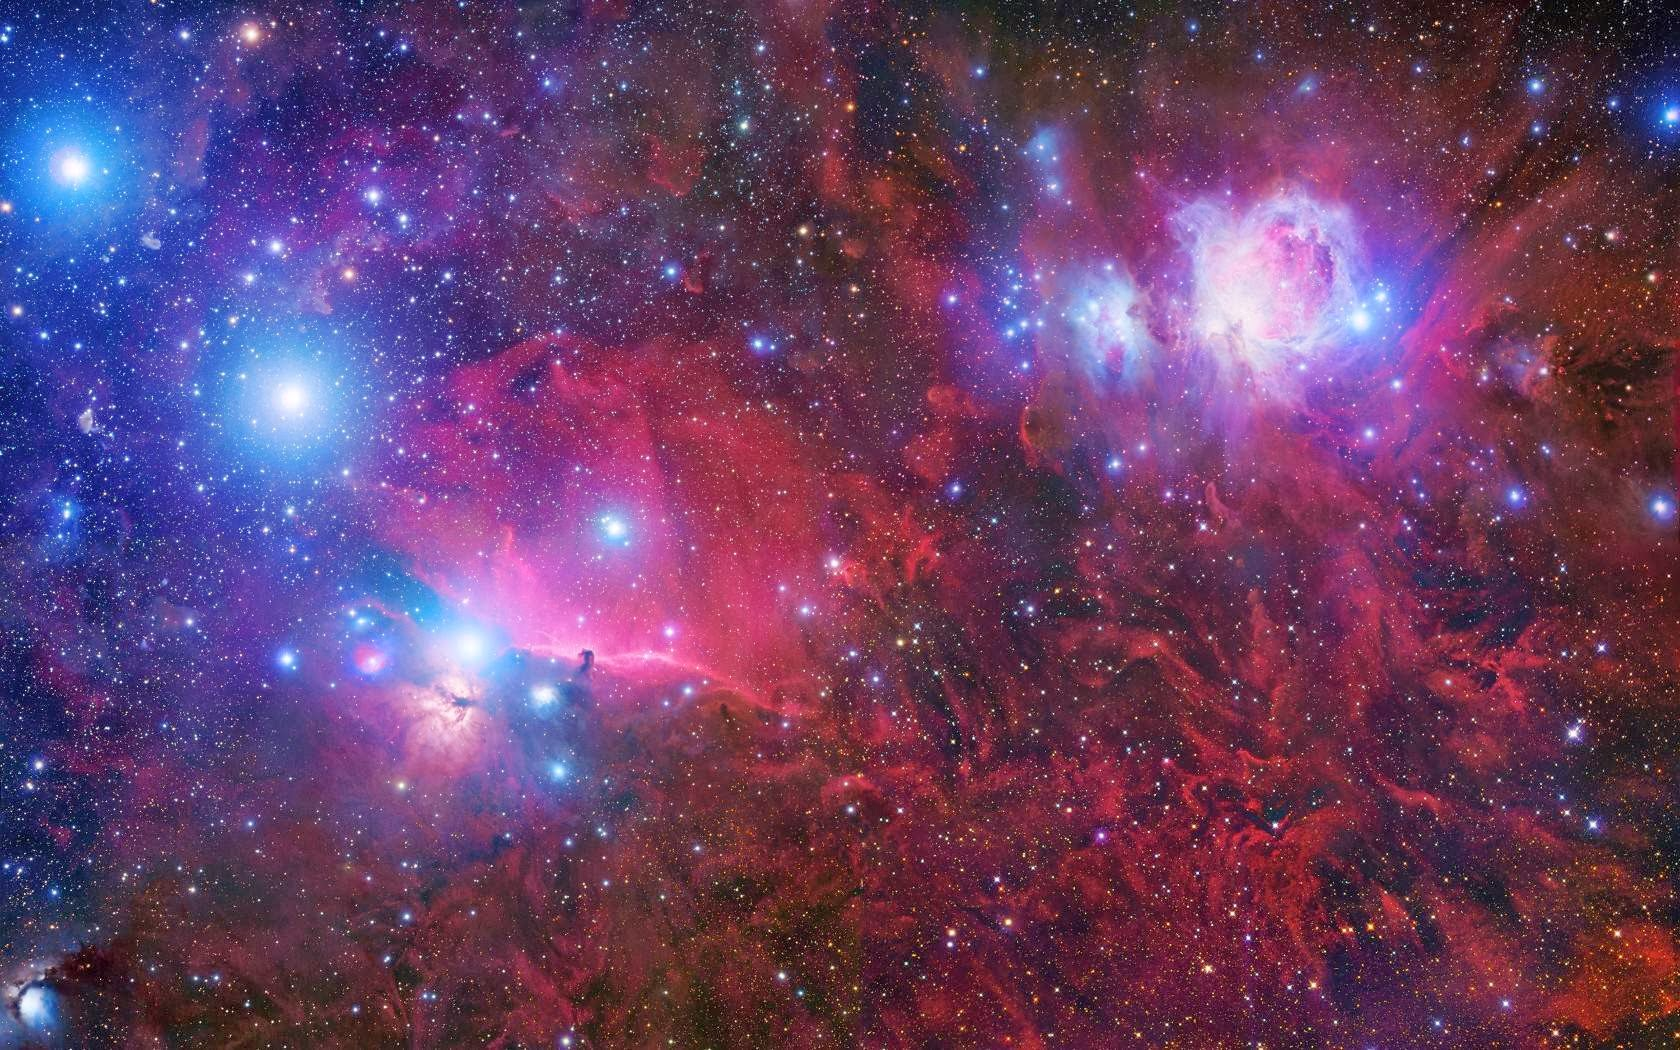 trippy outer space wallpaper hd - photo #14